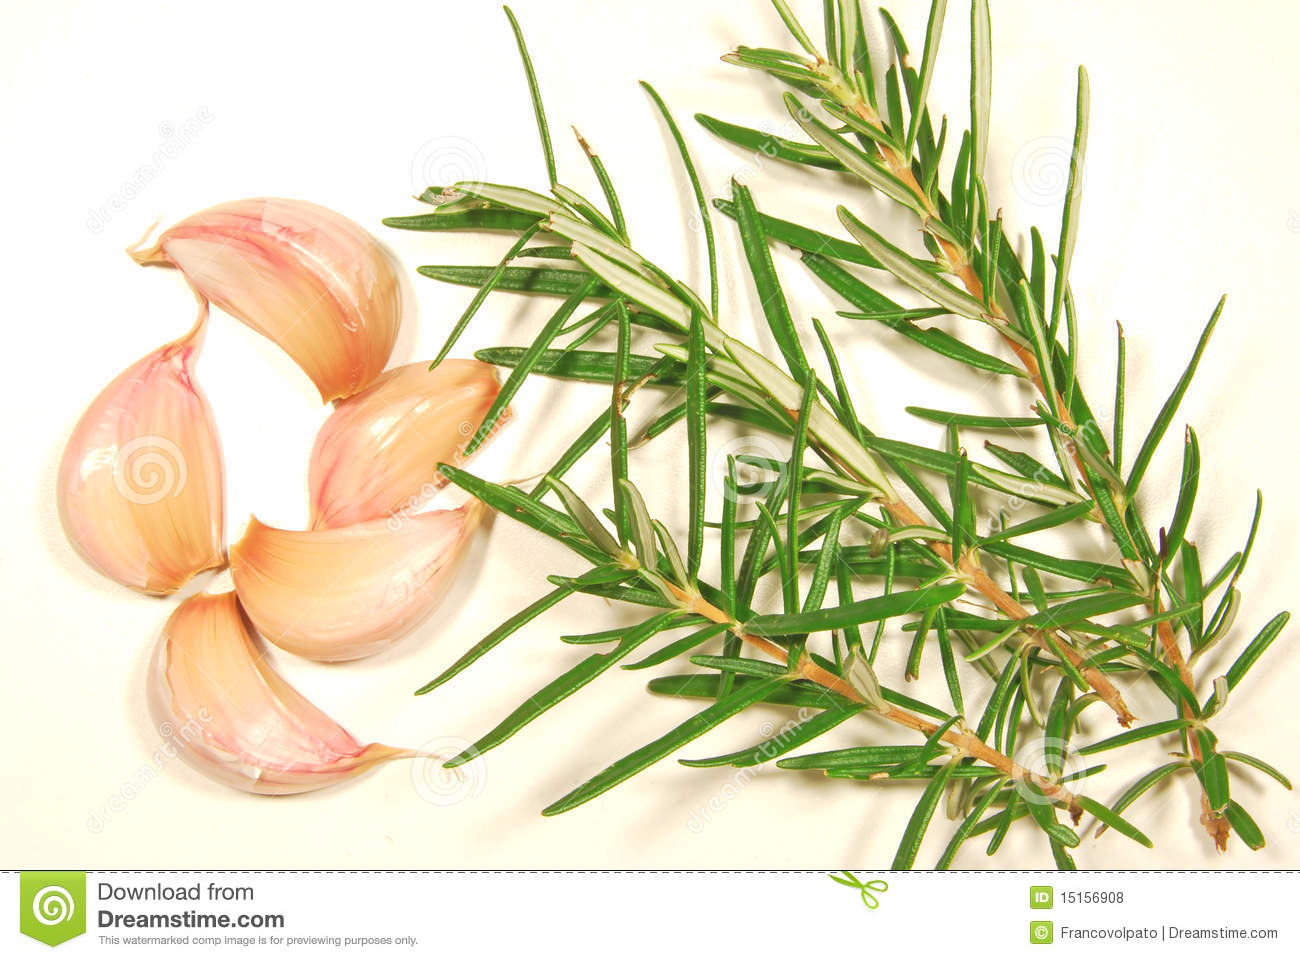 Garlic and Rosemary